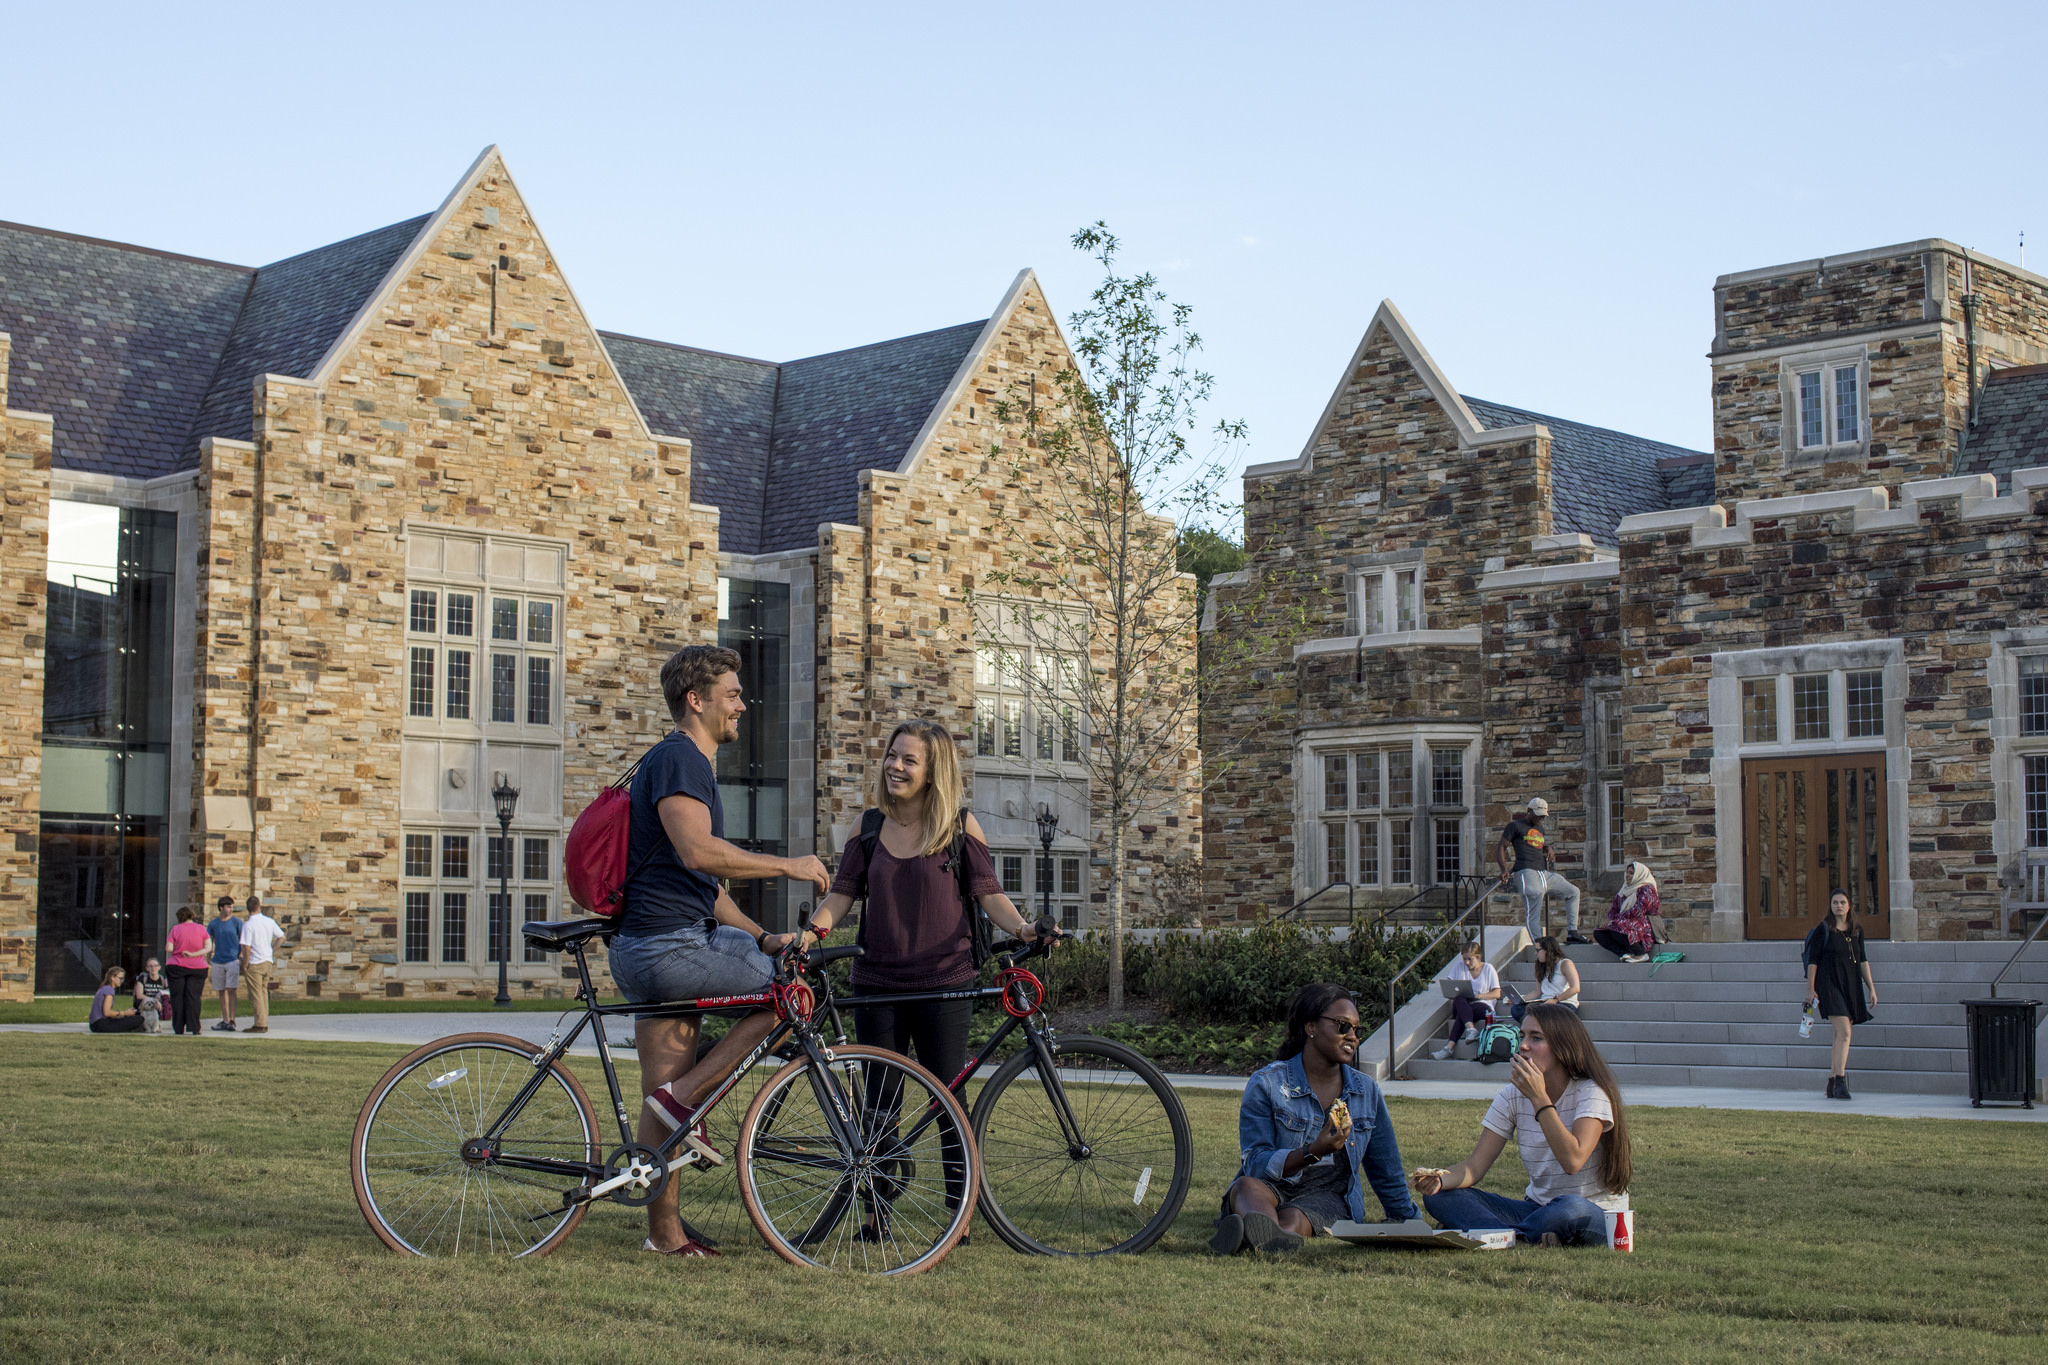 Students meet at sunset on a grassy quad surrounded by beautiful stone buildings.